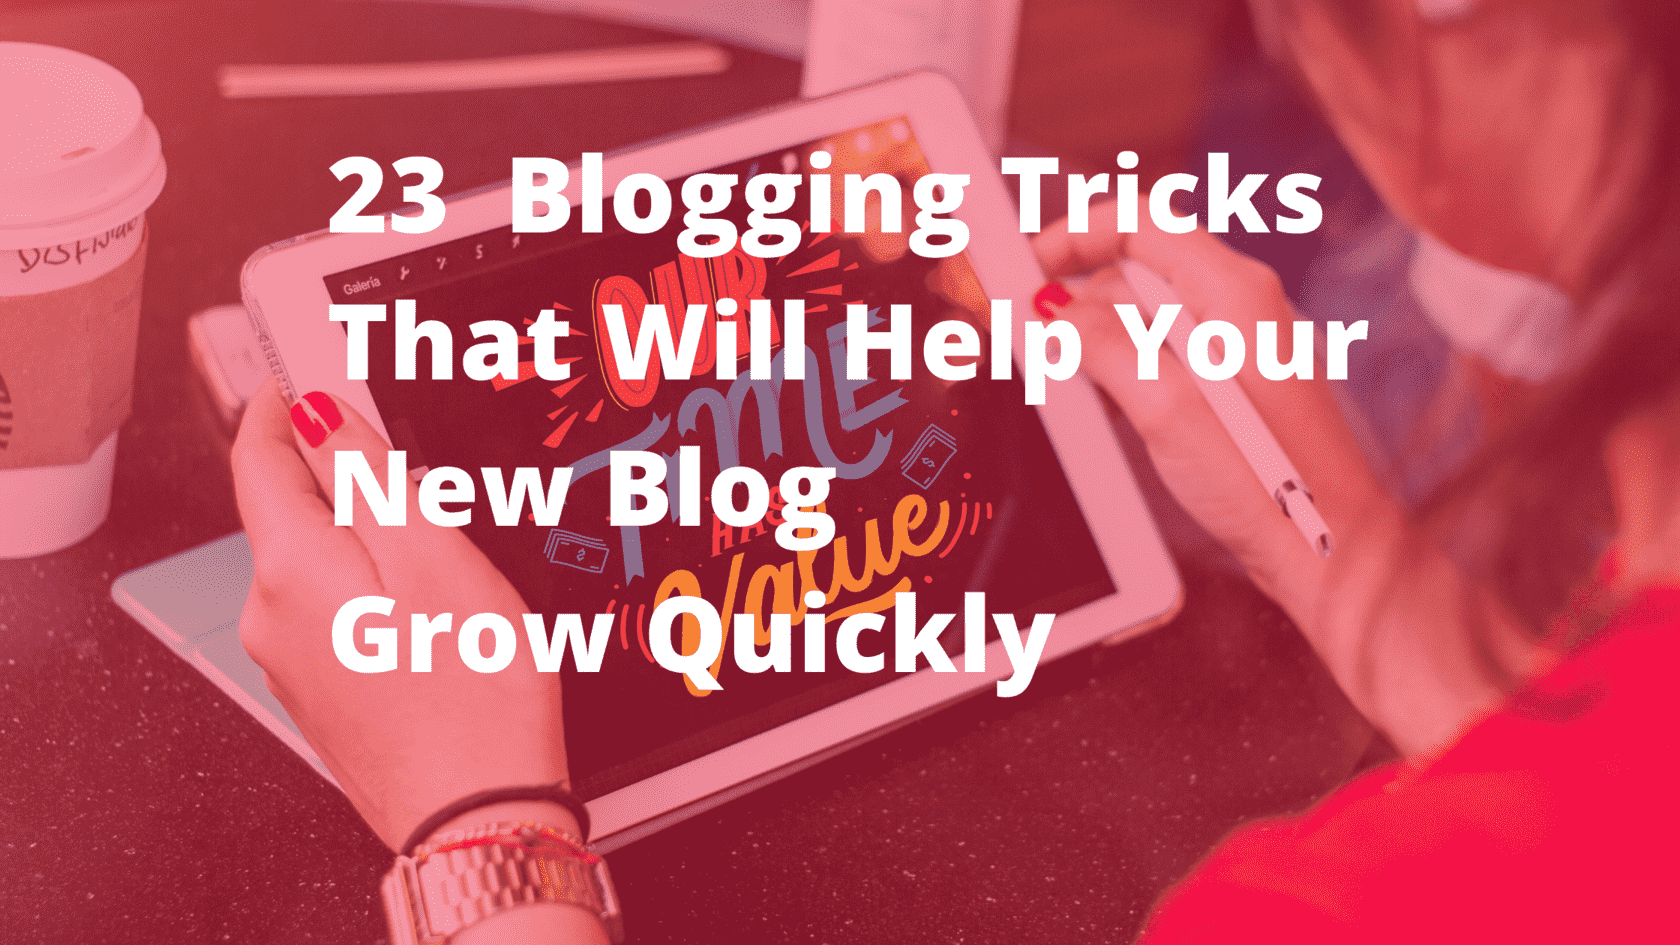 23 blogging tricks that will help your new blog grow quickly (1)